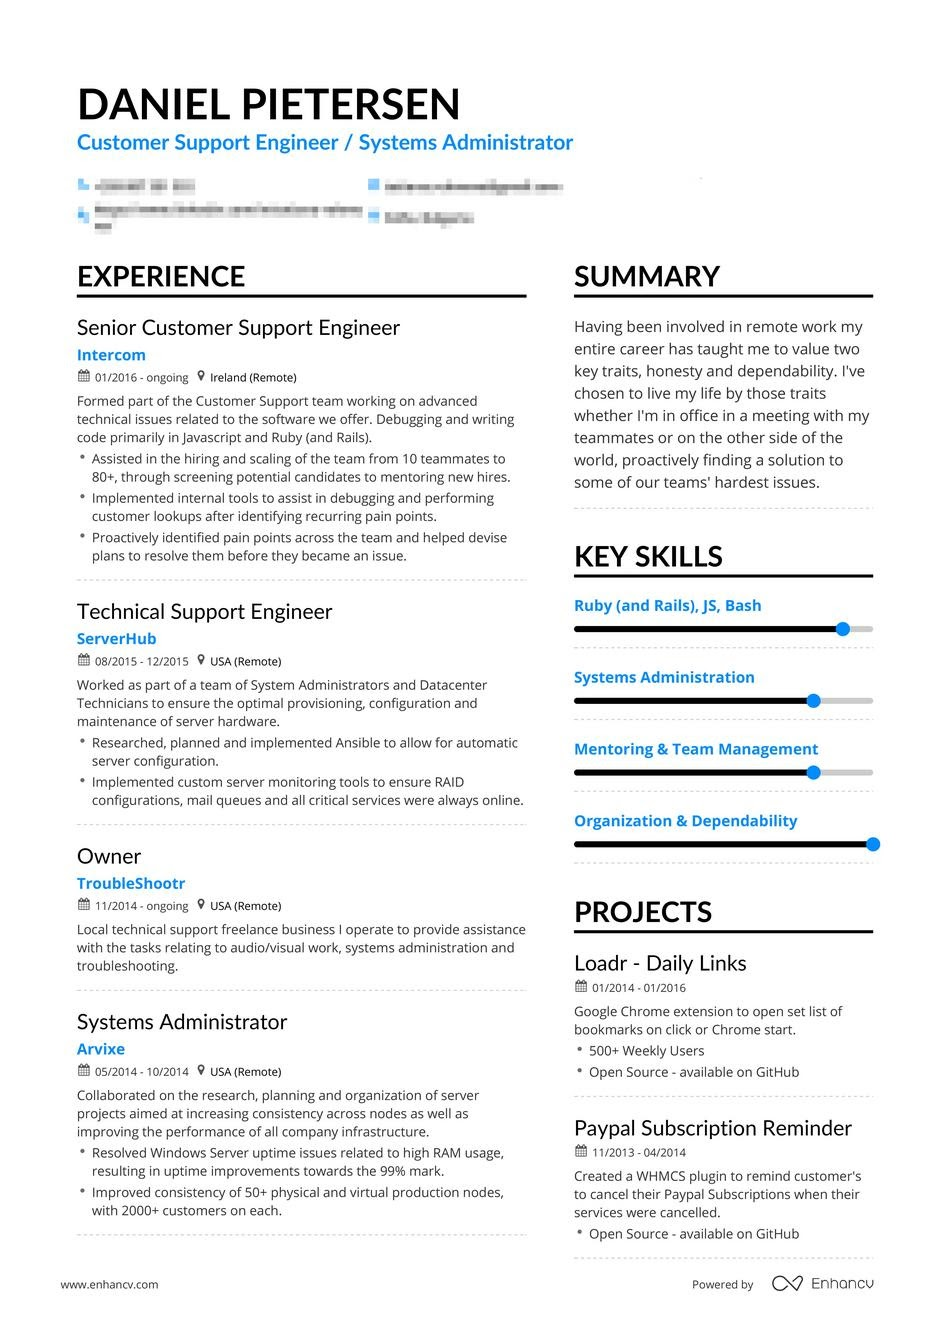 to make resume that stands out in guide creating daniel full media analyst commis chef Resume Creating A Resume That Stands Out